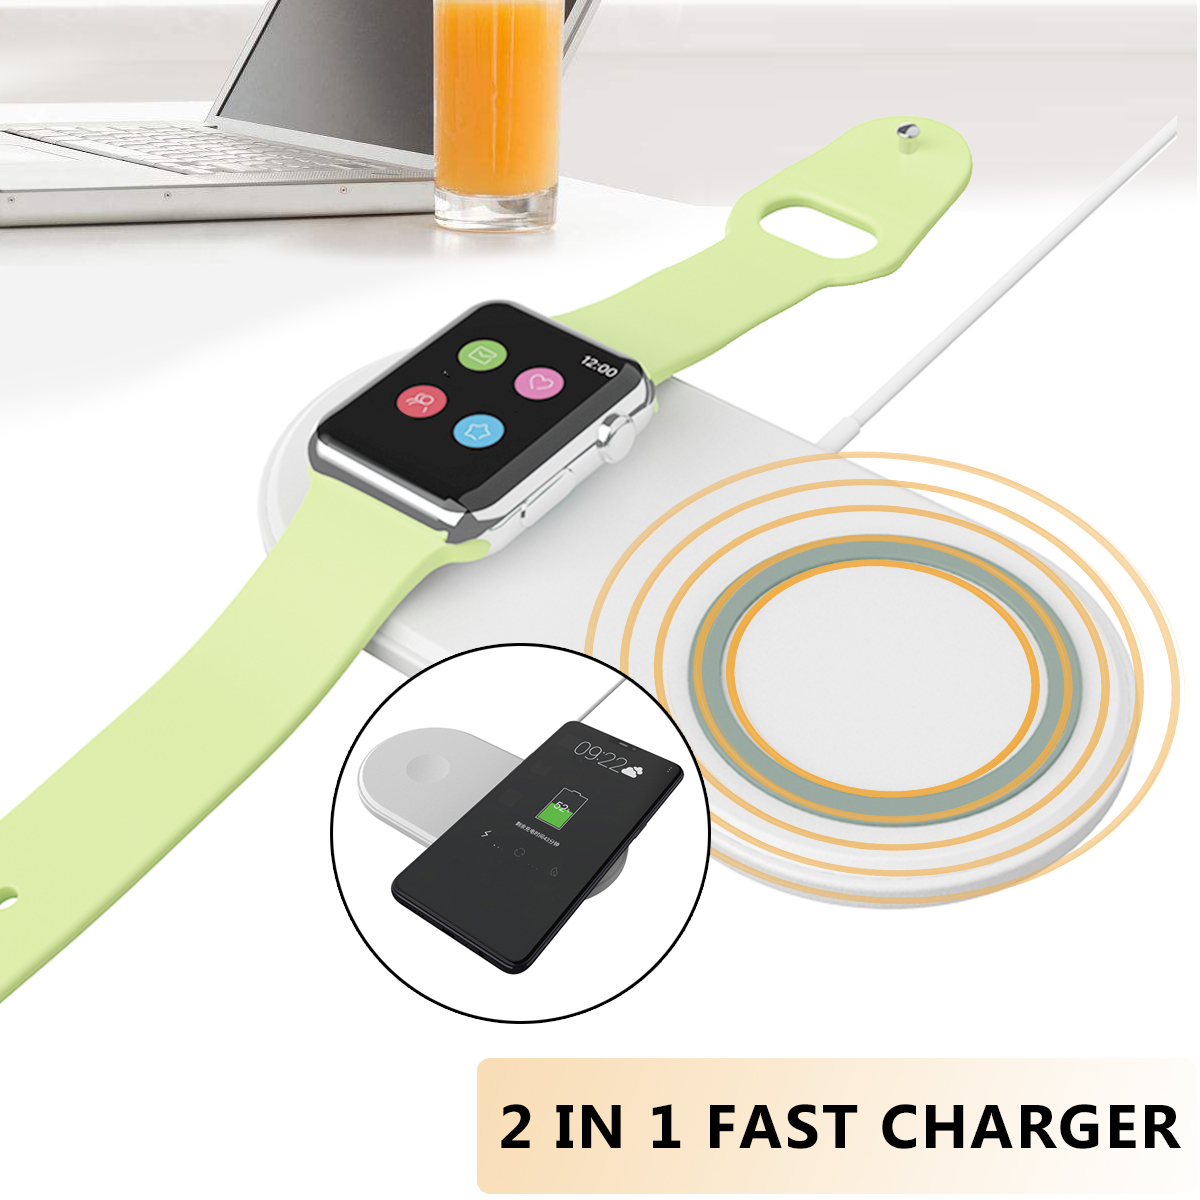 Bakeey WL-088 2 in 1 Fast Qi Wireless Charger with Cooling Fan for iPhone X 8 Plus iWatch S8 S9